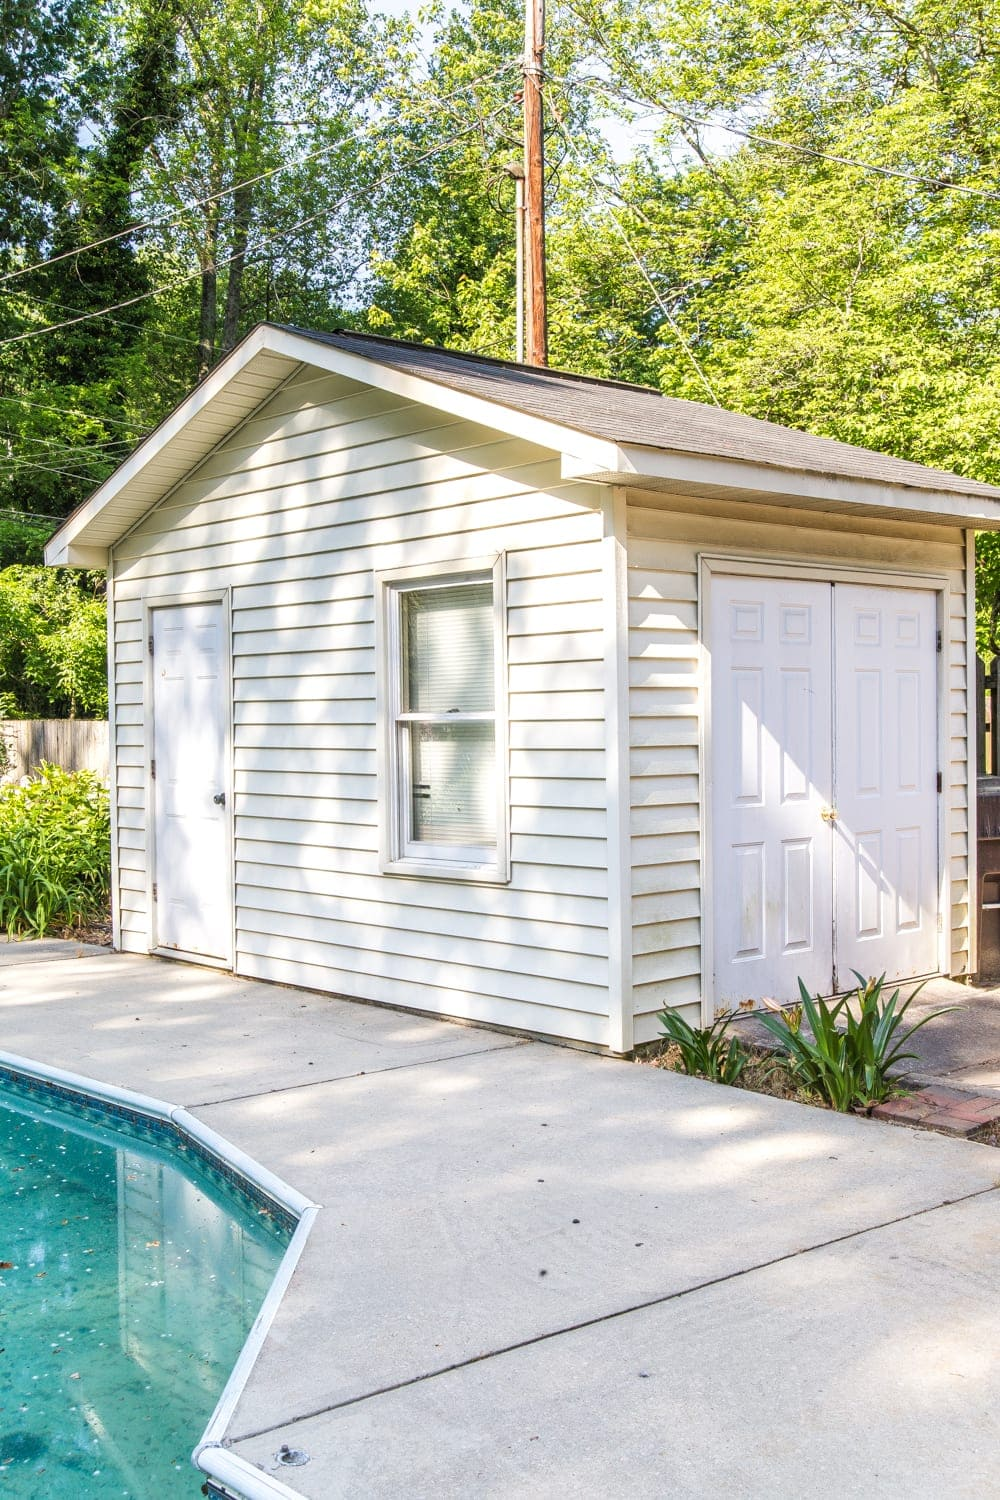 Backyard Before Tour and Pool Makeover Plans | blesserhouse.com - Ideas to improve an outdoor pool and garden shed